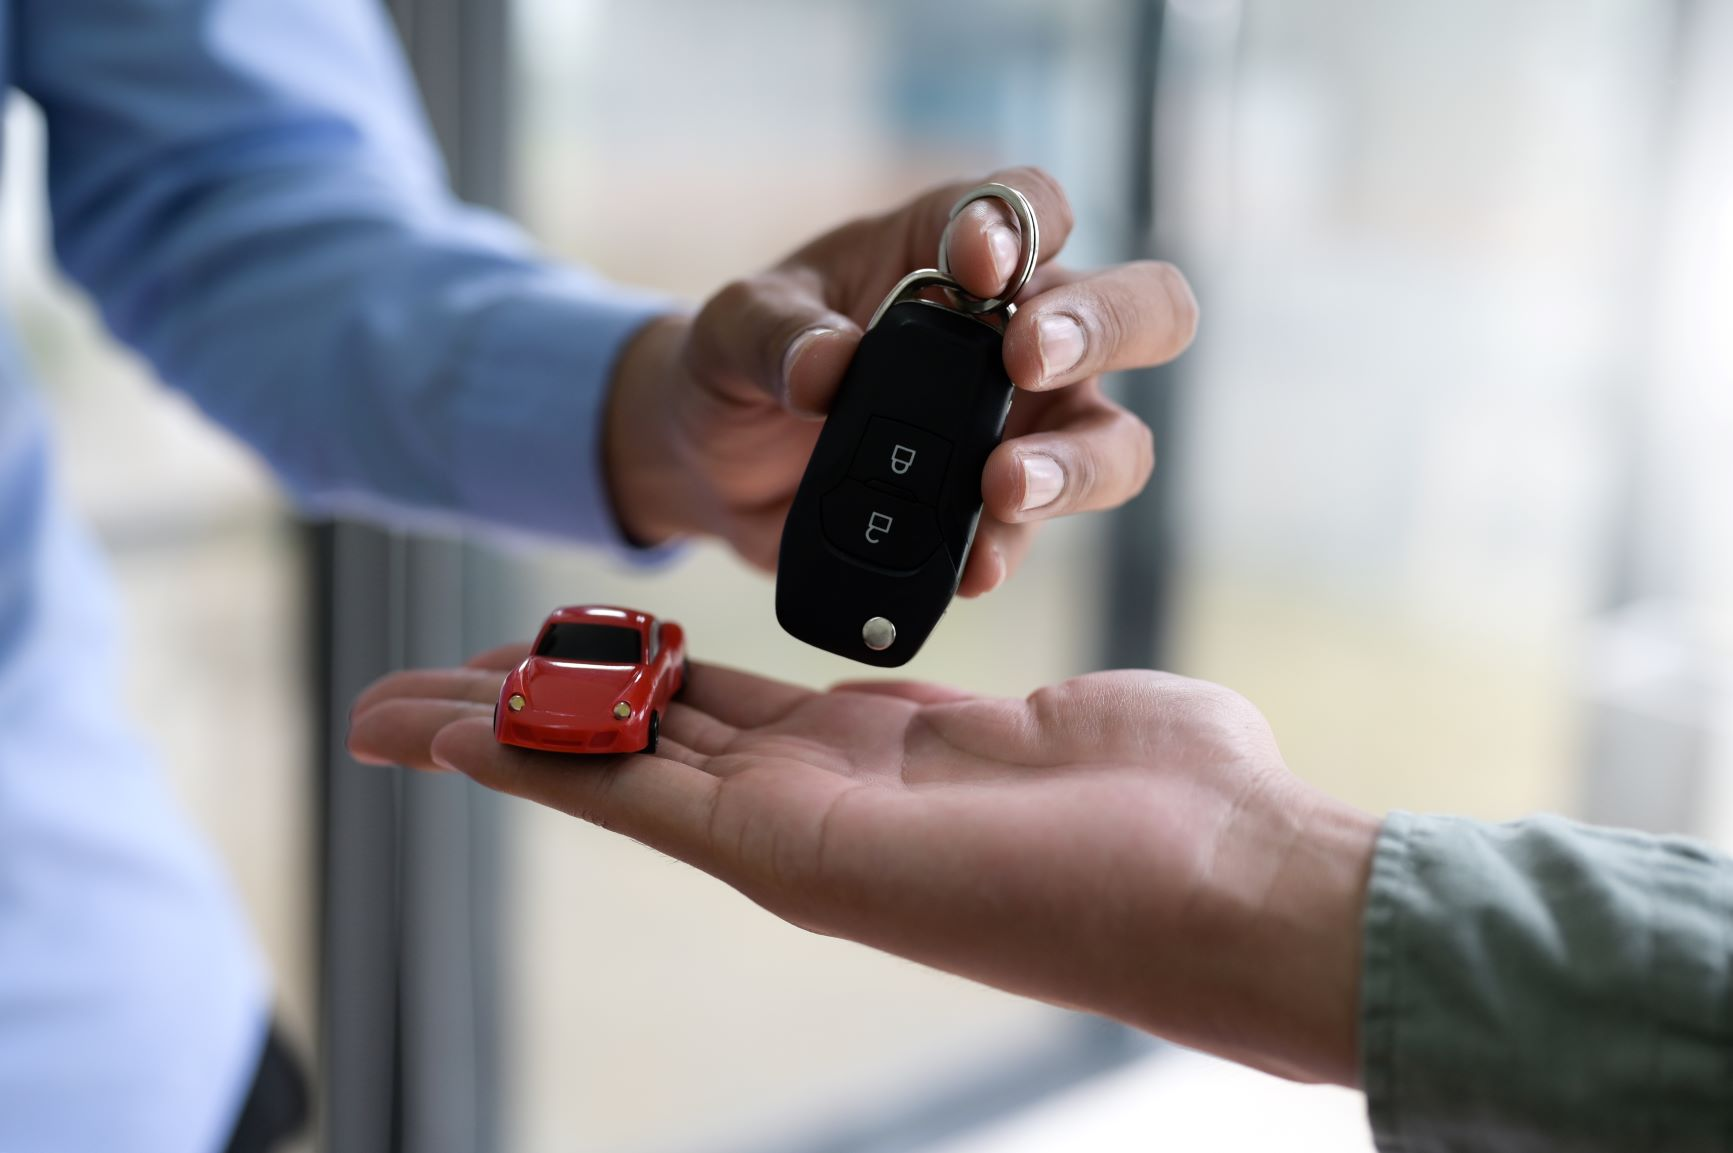 car keys and red toy car with hands in shot